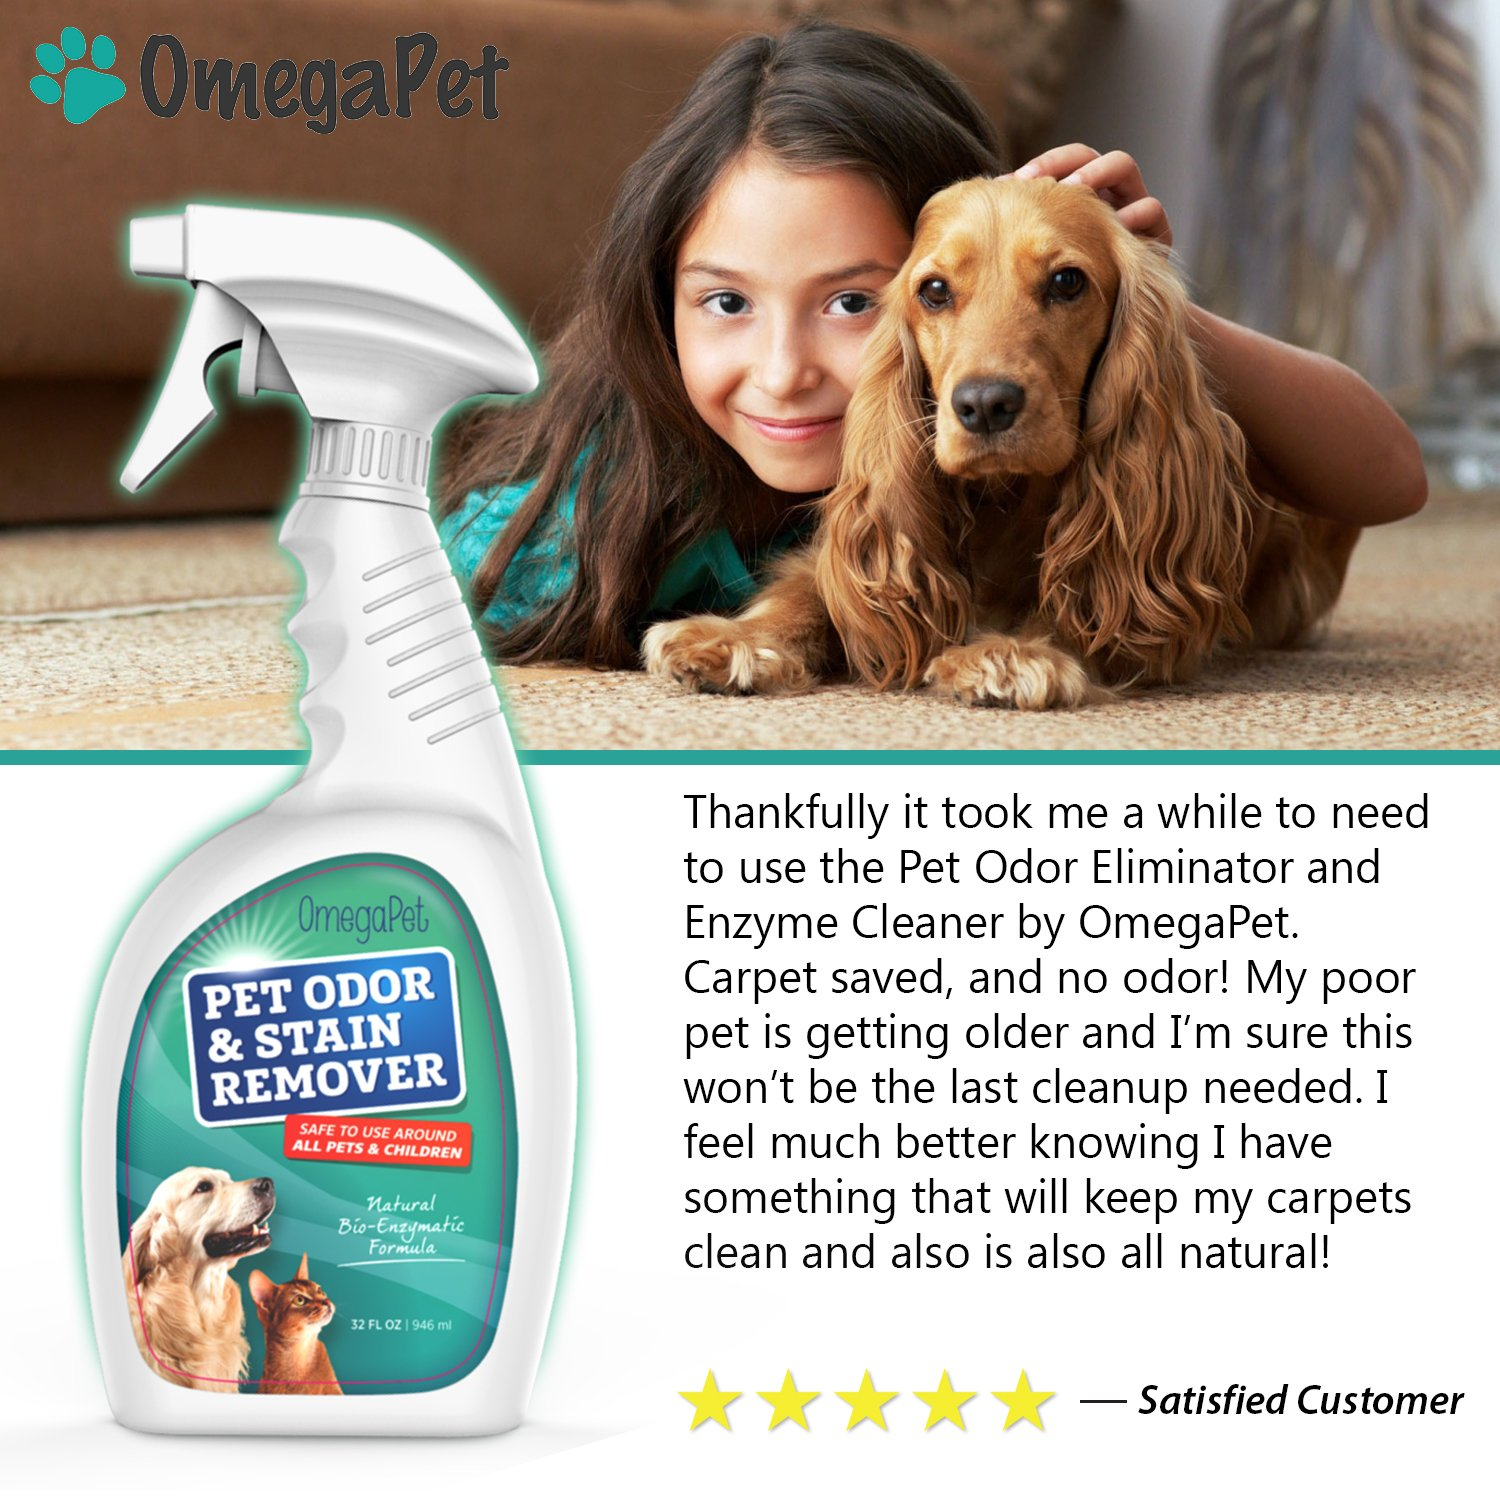 amazoncom pet urine remover and odor neutralizer best used as cat urine remover dog urine remover and stain remover on carpet u0026 hardwood